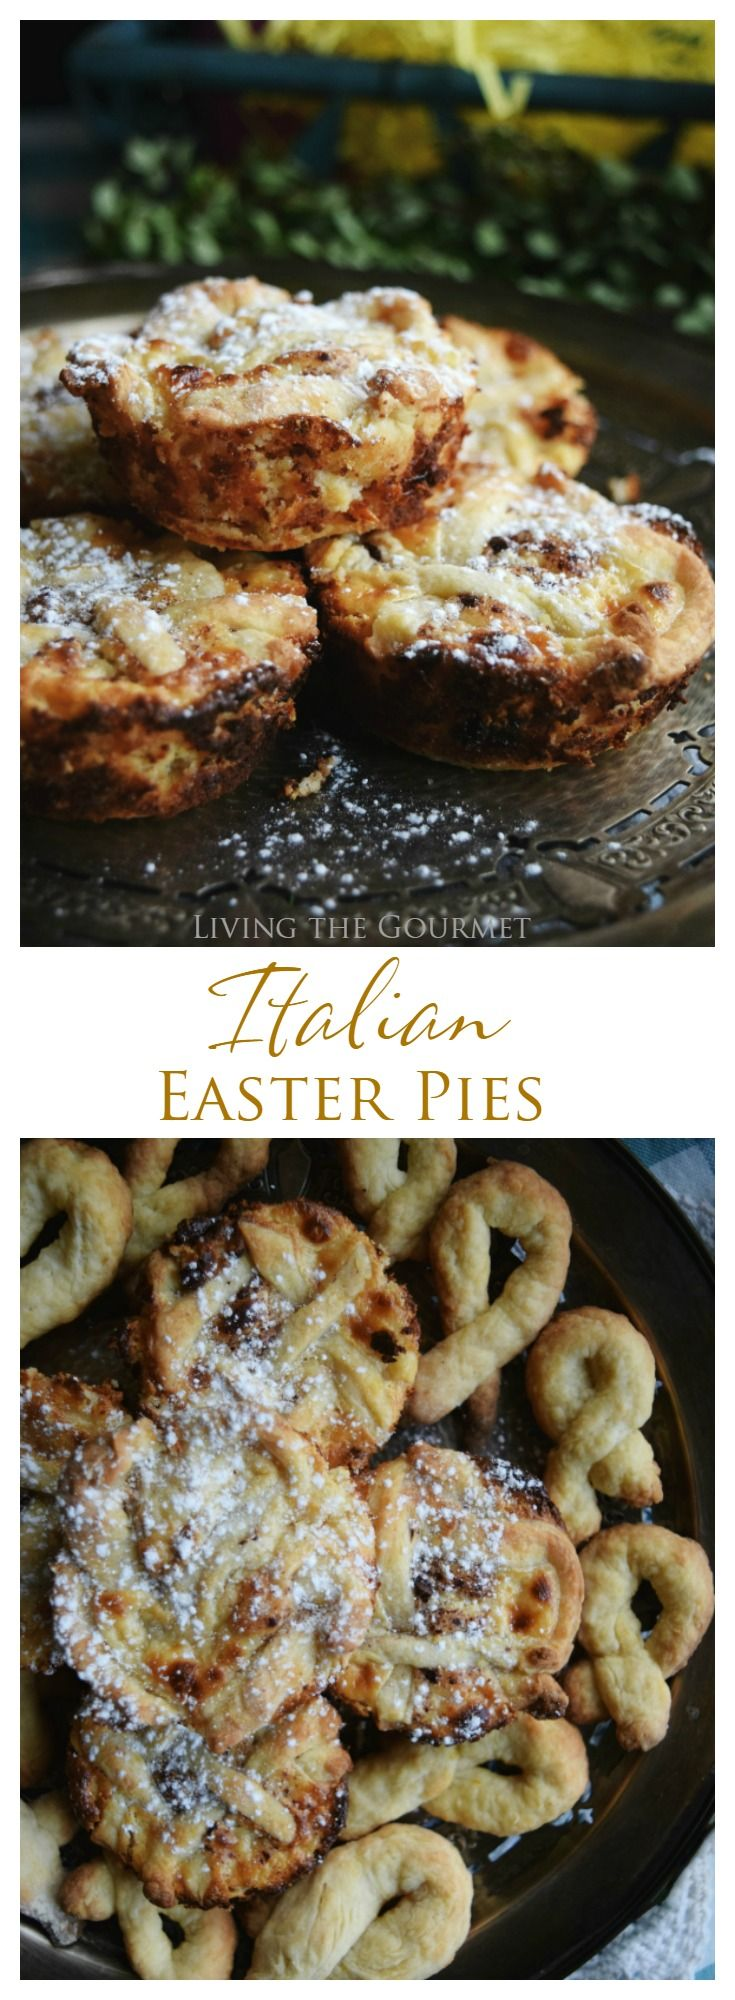 "Italian Easter Pies are a traditional dessert made of a sweet whipped ricotta filling that's baked over a flaky crust! While I am a fervent classicalist, perhaps one of my favorite lines of dialogue comes from the movie Blade Runner, specifically Roy Batty's brief exchange at the end of the film, which ran ""I've seen..."